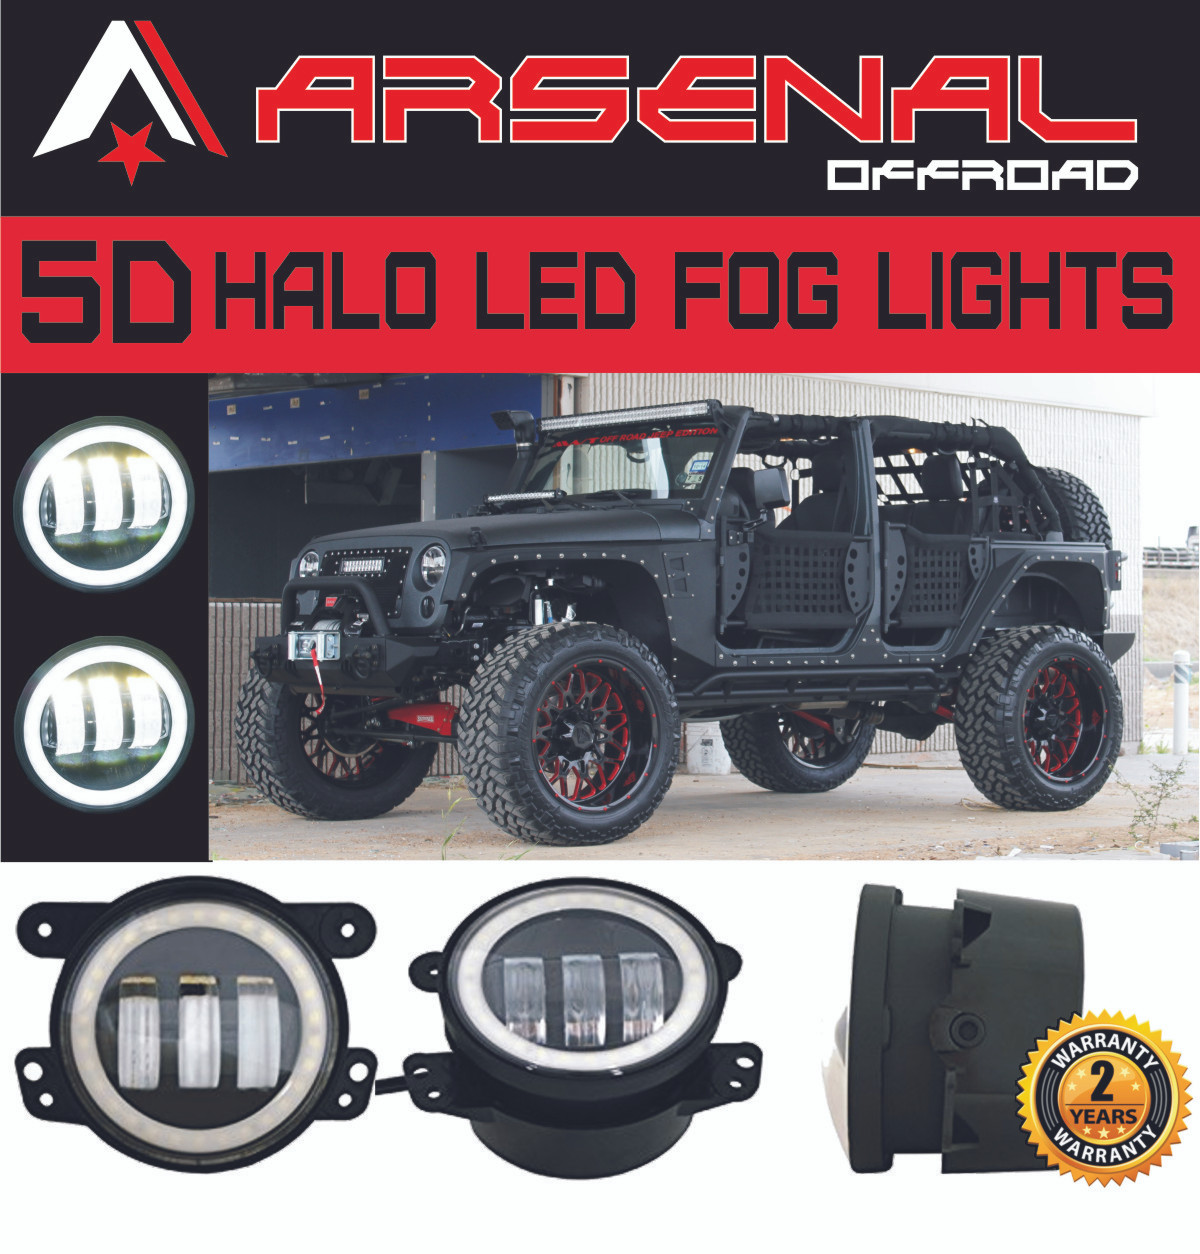 hight resolution of  1 4 inch 60w cree led fog lights w white halo ring drl for jeep wrangler 97 15 jk tj lj off road fog lamps